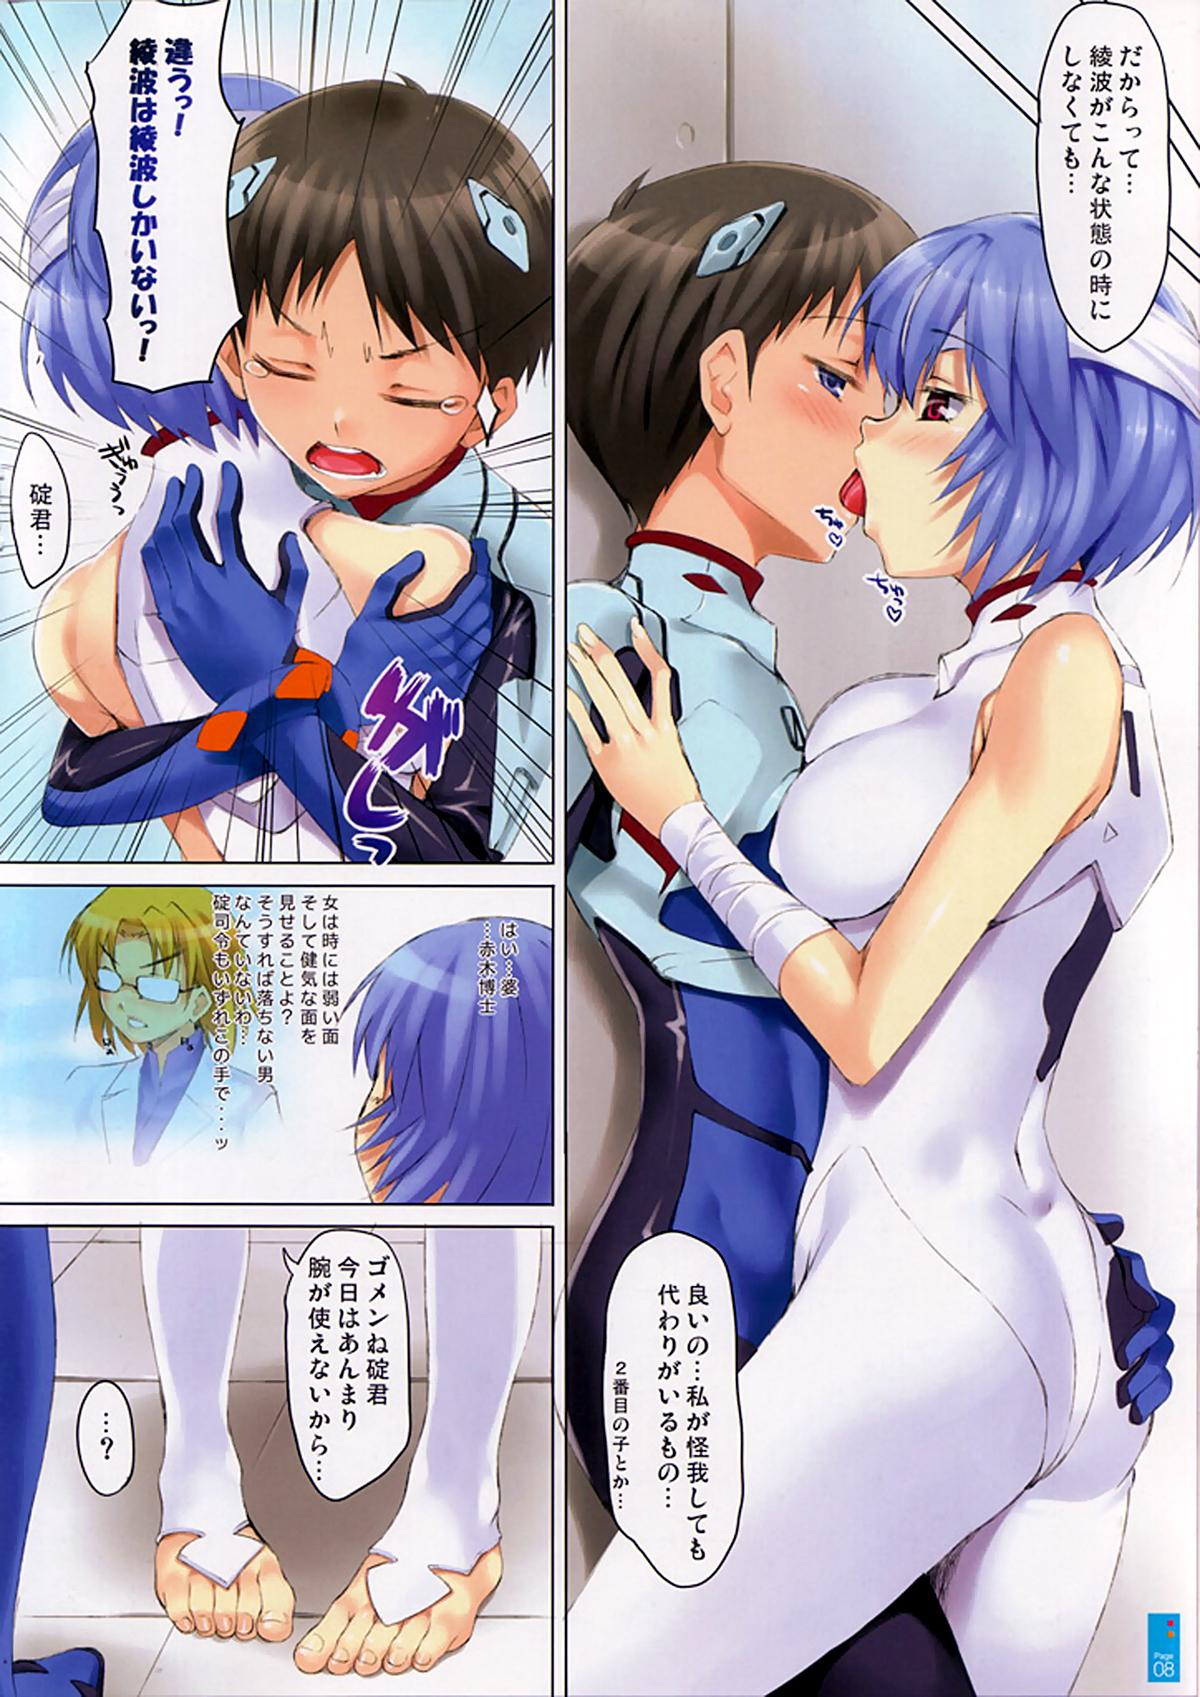 (SC48) [Clesta (Cle Masahiro)] CL-orz: 10.0 - you can (not) advance (Rebuild of Evangelion) [Decensored] 7